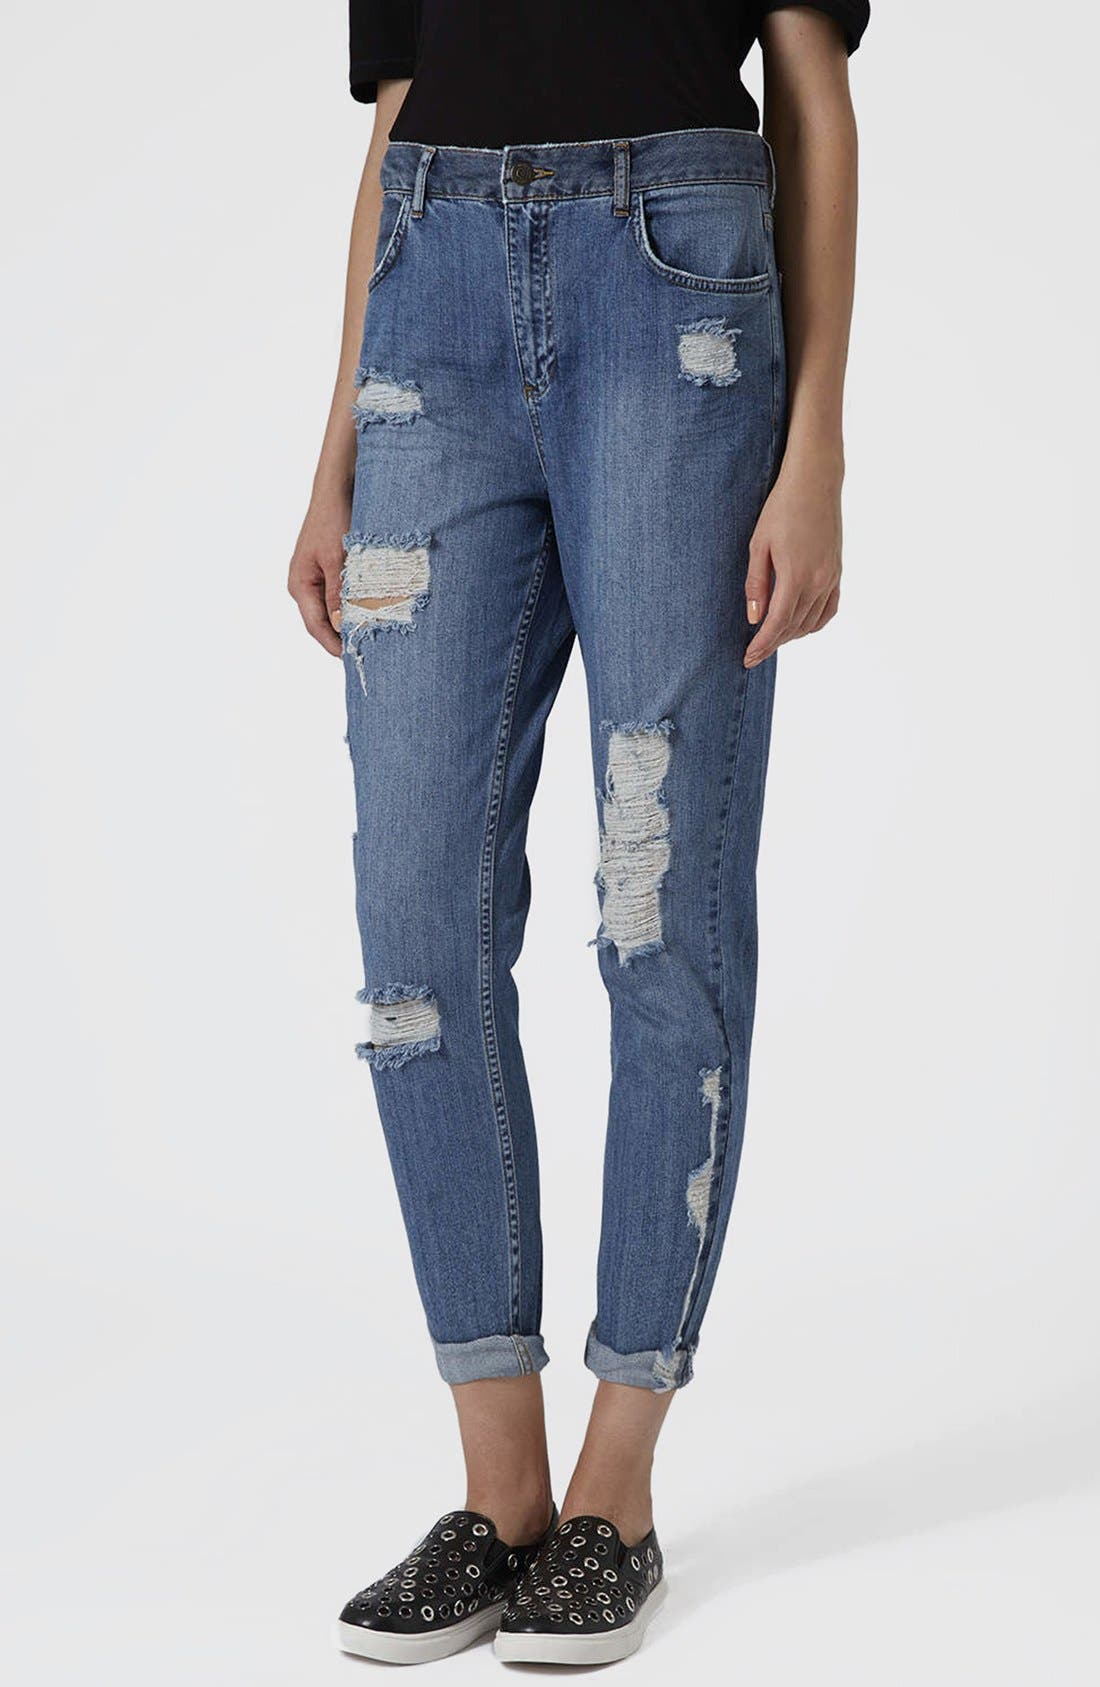 Alternate Image 1 Selected - Topshop Moto Reclaim To Wear High Waist Tapered Jeans (Mid Denim)